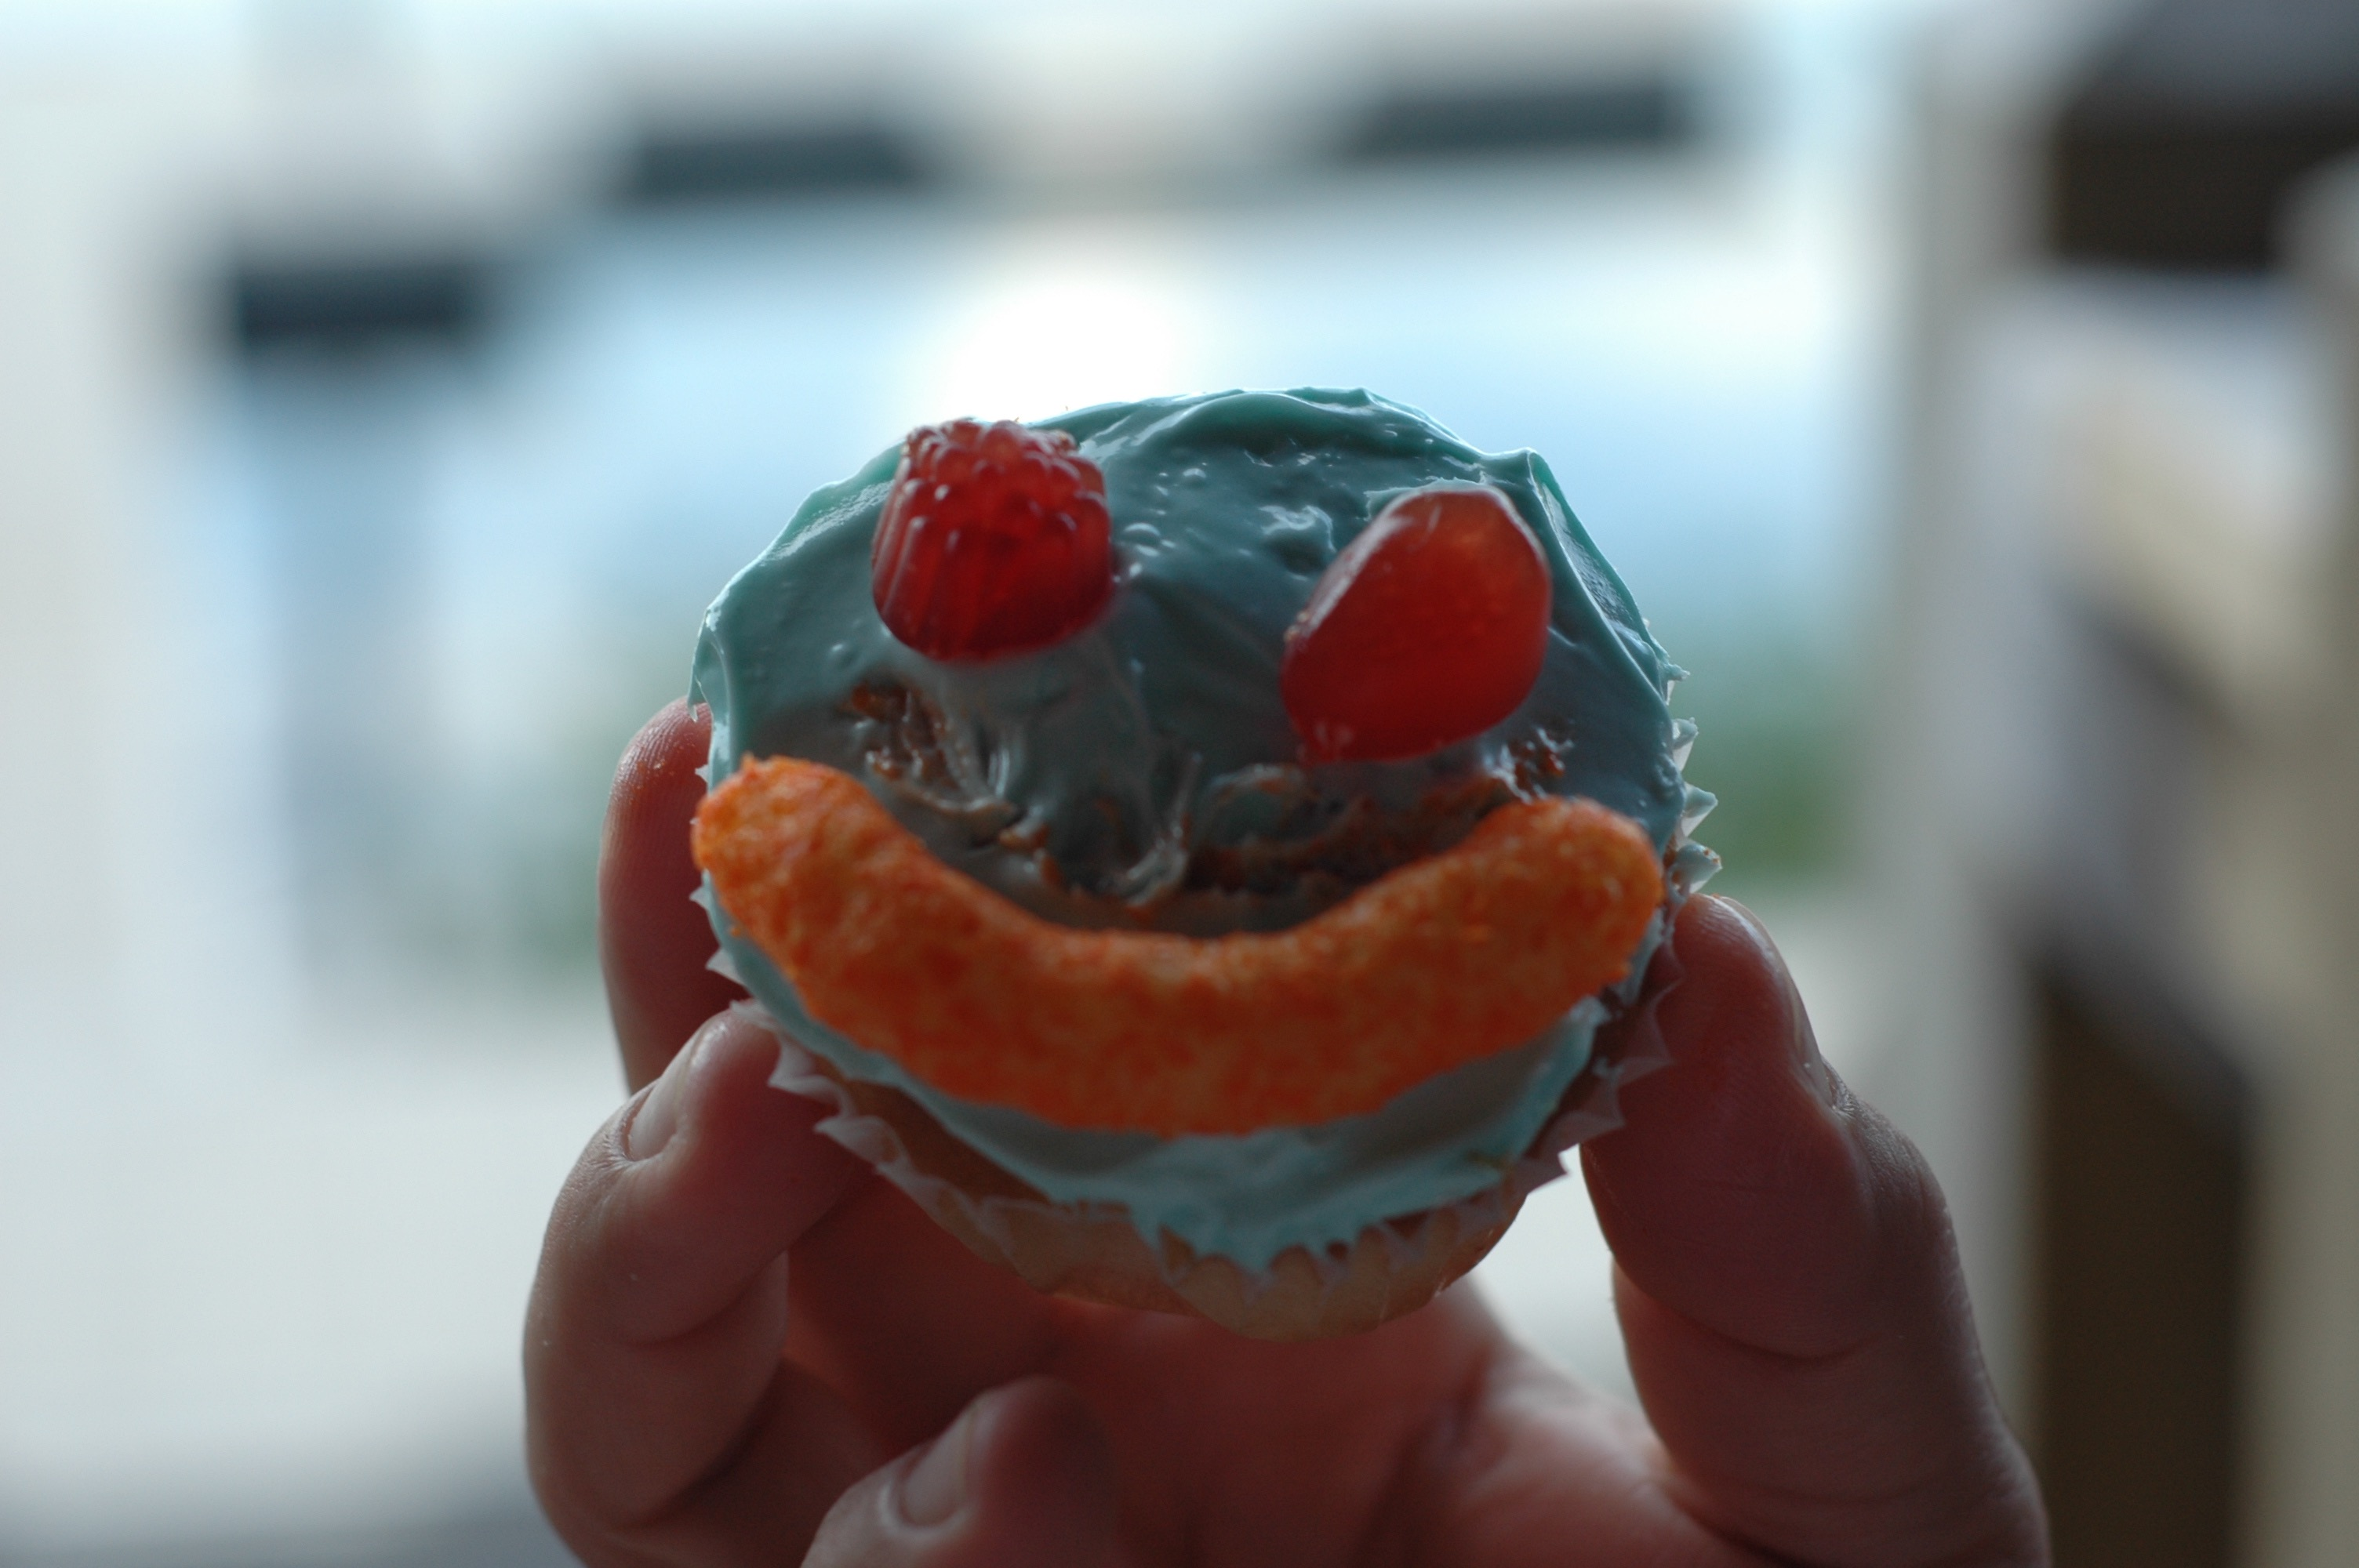 Camper makes their own cupcake.